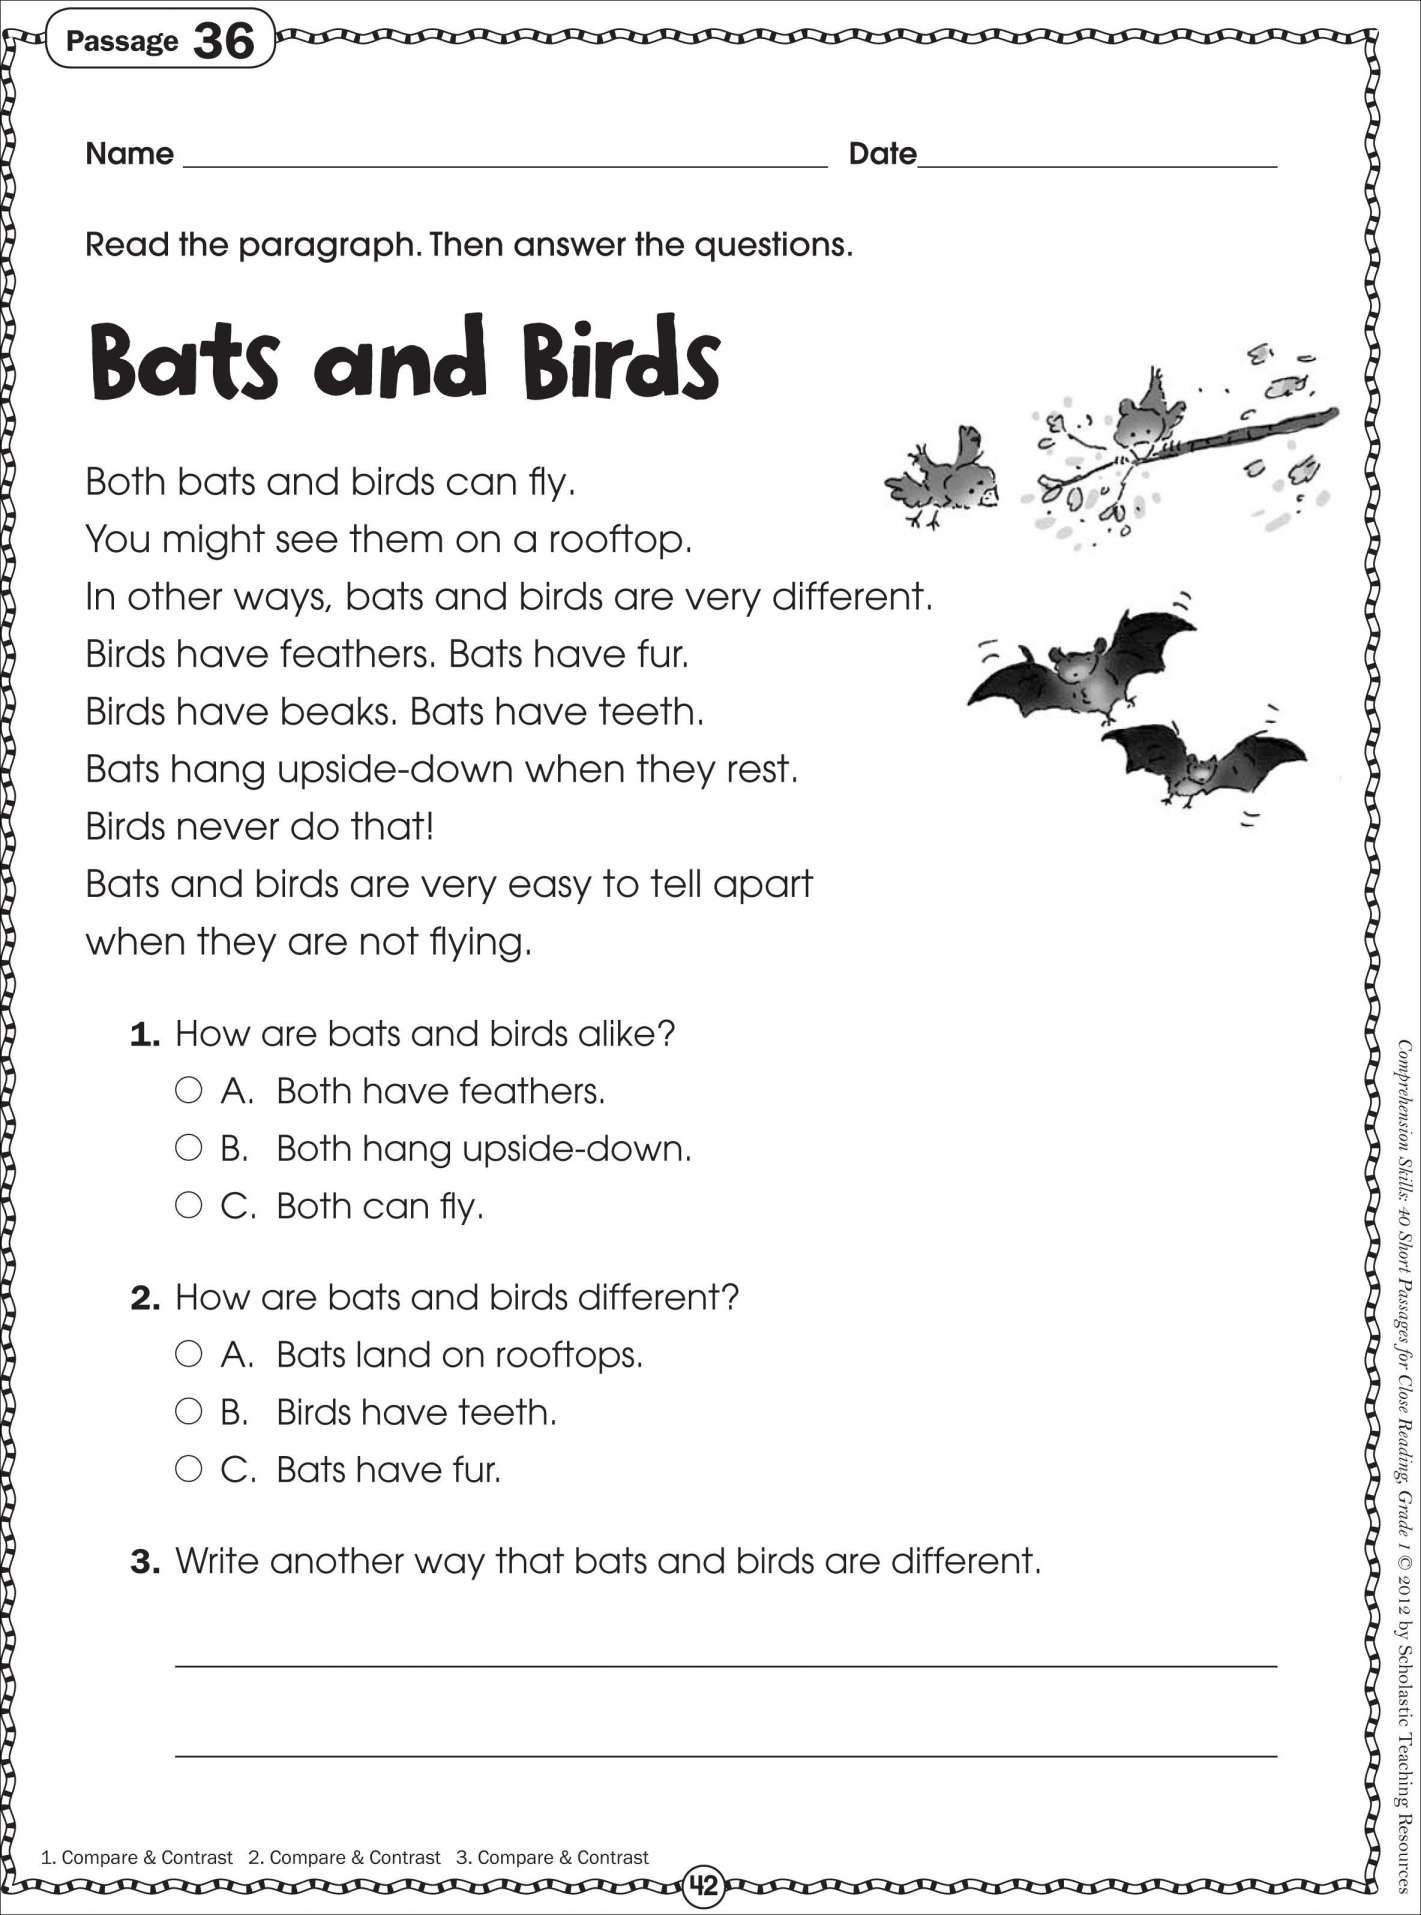 7 Reading Comprehension Worksheets 5th Grade - Free Templates [ 1915 x 1421 Pixel ]